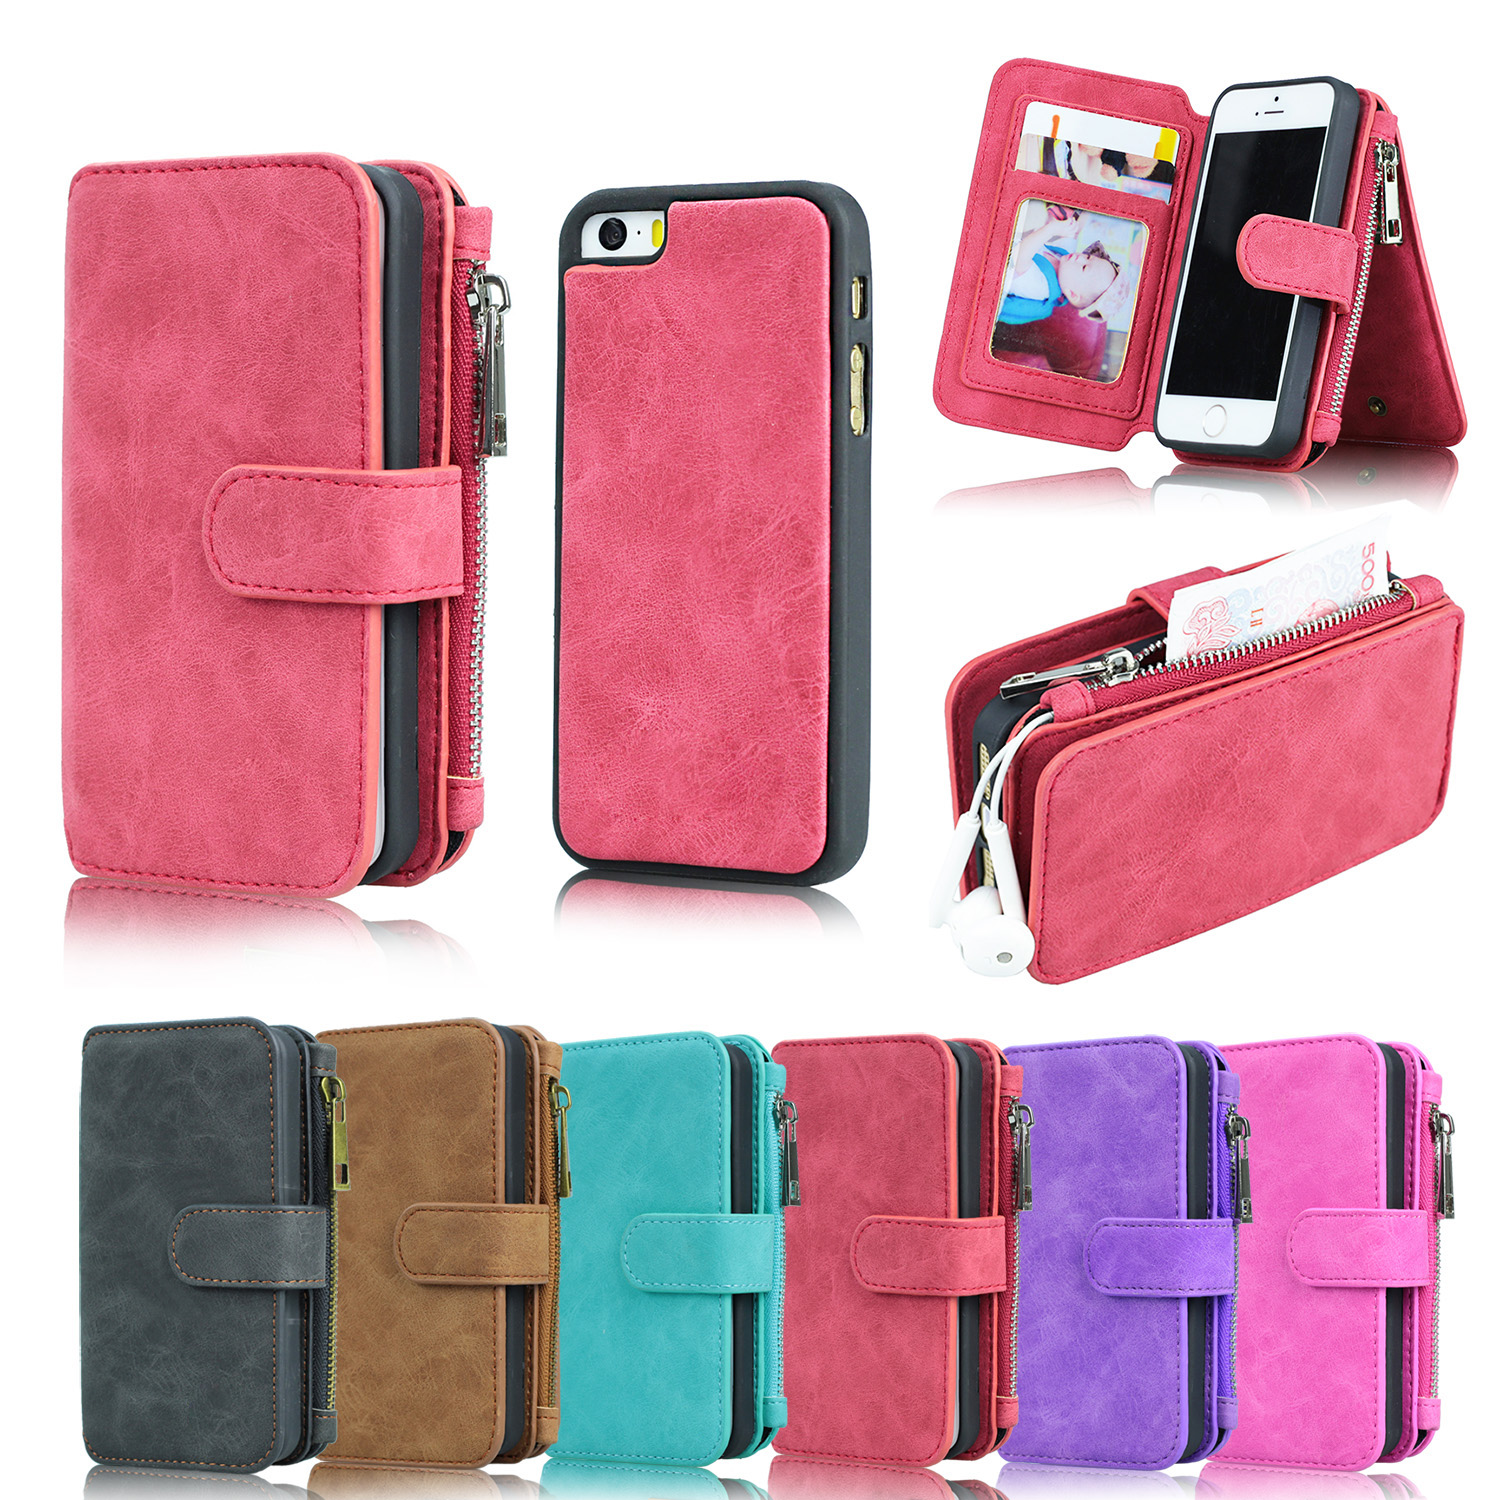 new arrival cf35f b9cd2 US $14.99 |Aliexpress.com : Buy Multifunctional Zipper Wallet Case for  iPhone 5 se case MEGSHI 8 credit card slot kickstand removable Mobile Phone  ...